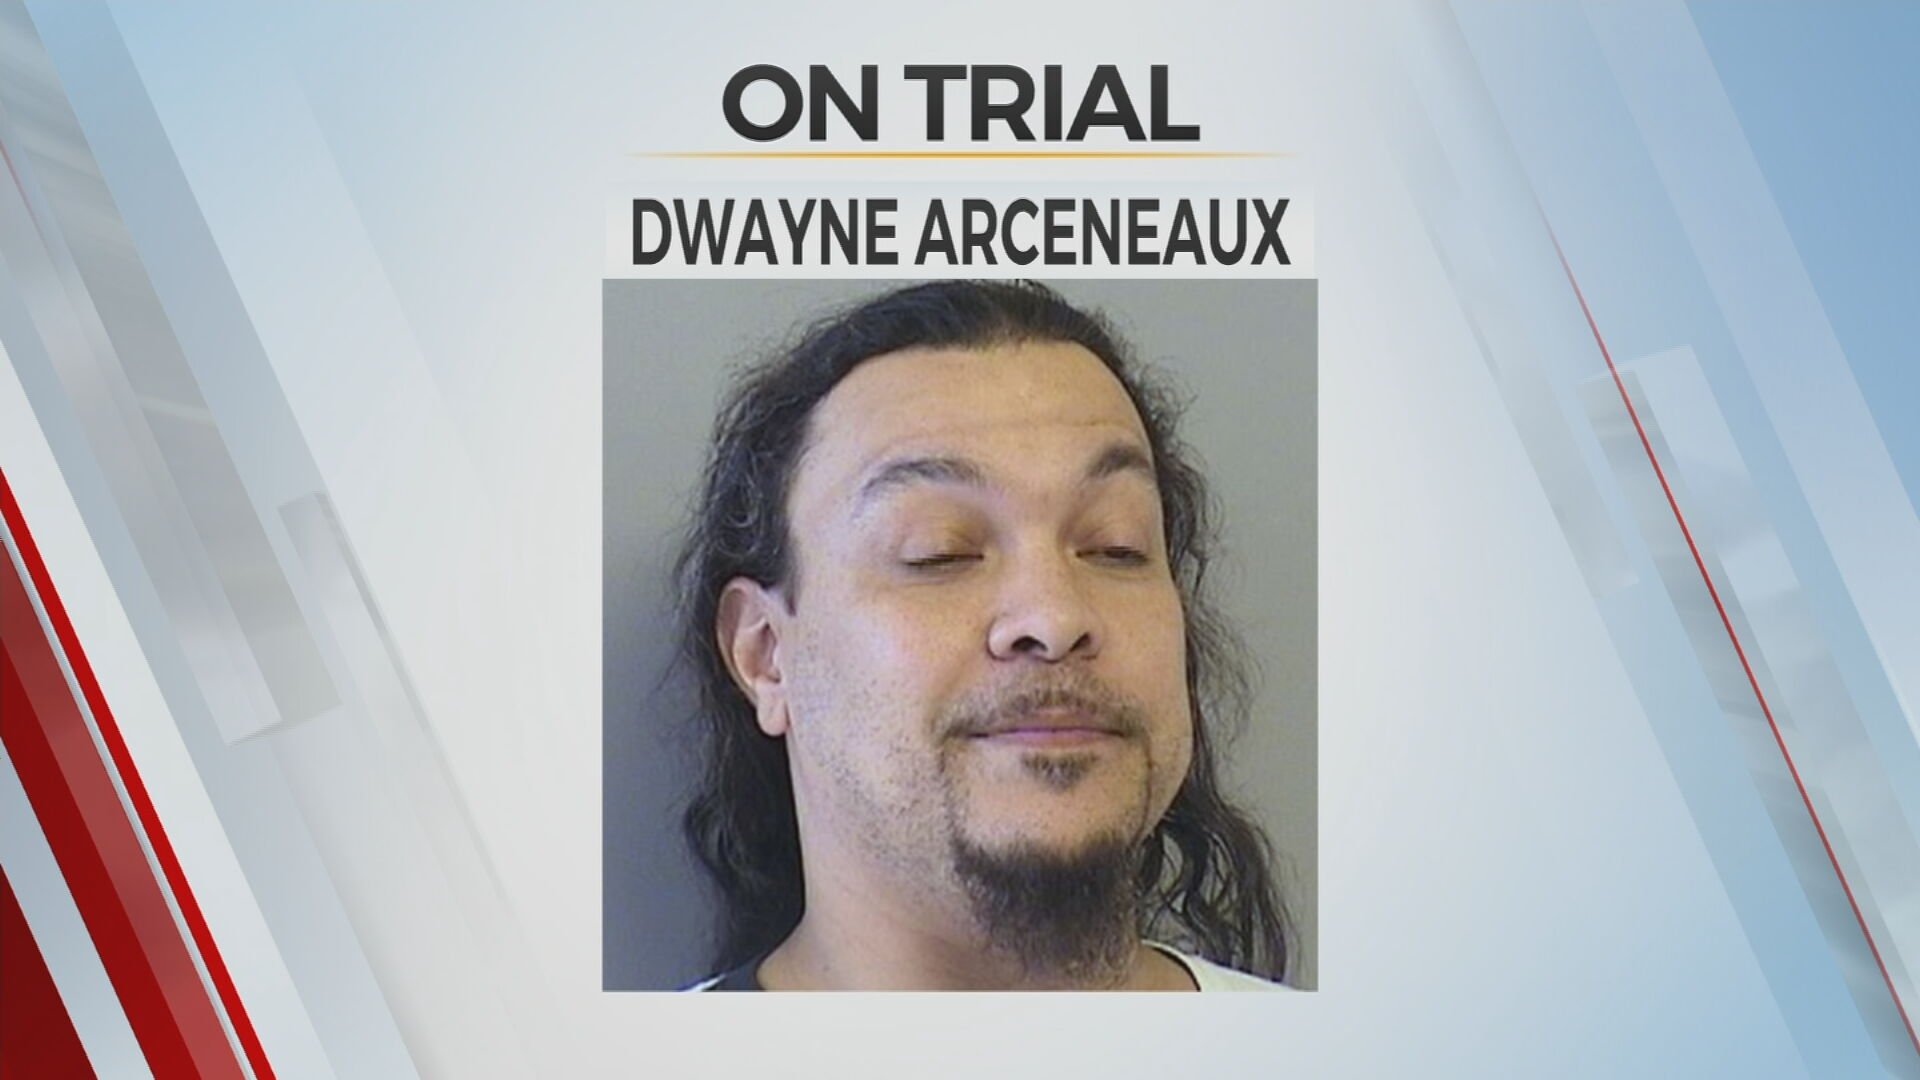 Texas Man On Trial Accused Of Shooting, Killing Man In Fight Outside Tulsa Bar